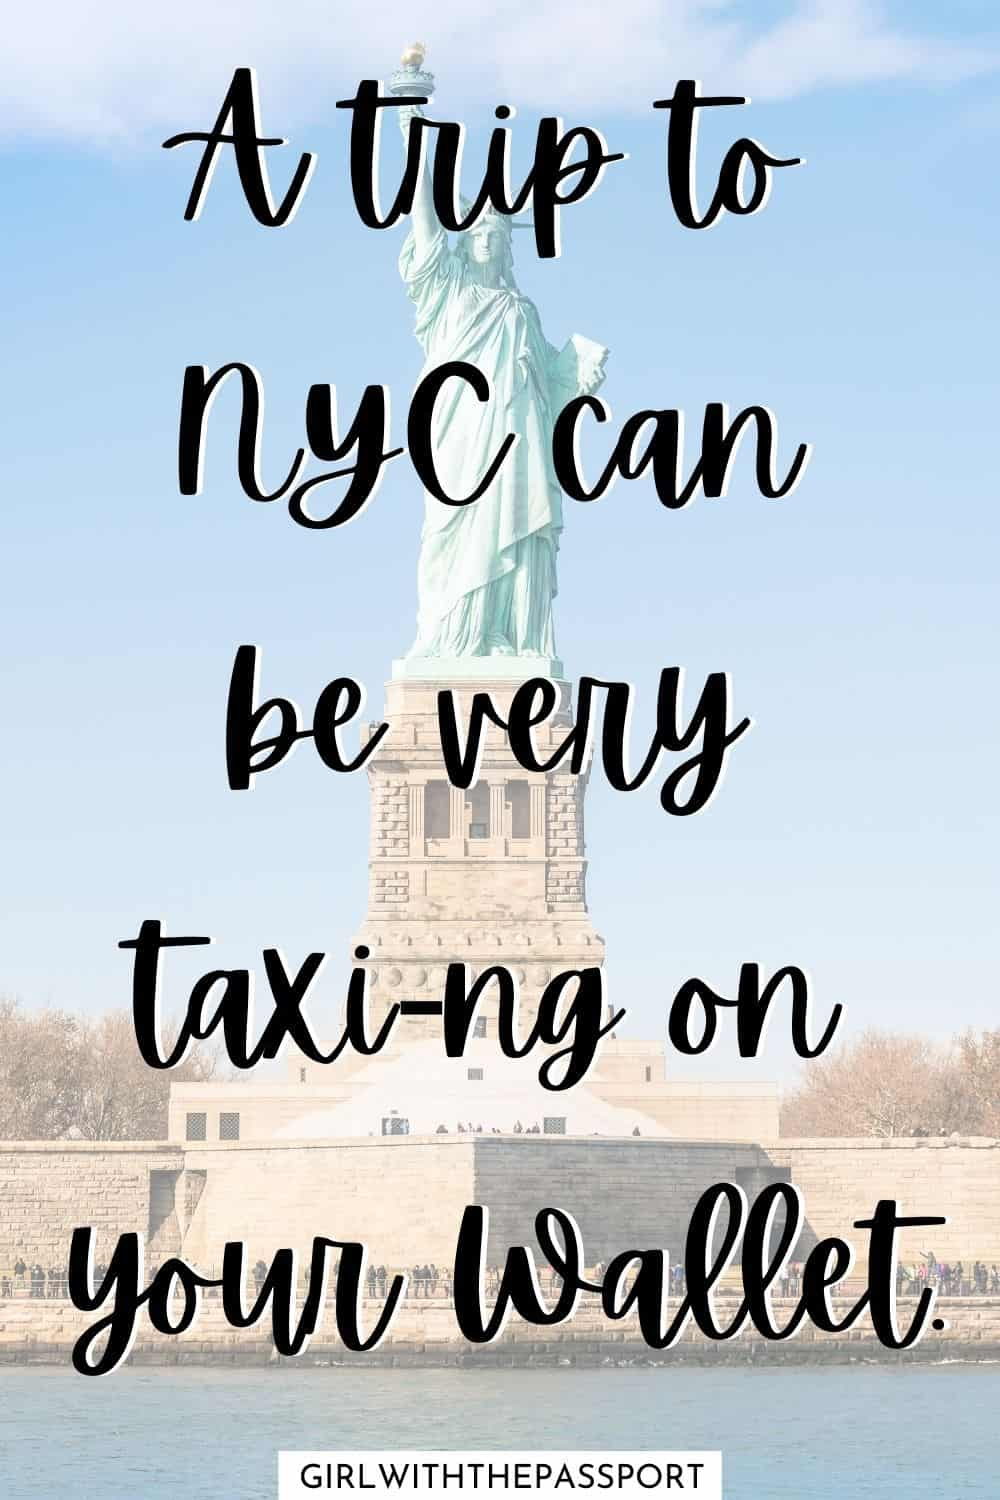 A trip to NYC can be very taxi-ng on your wallet. One of the best Instagram captions for New York.